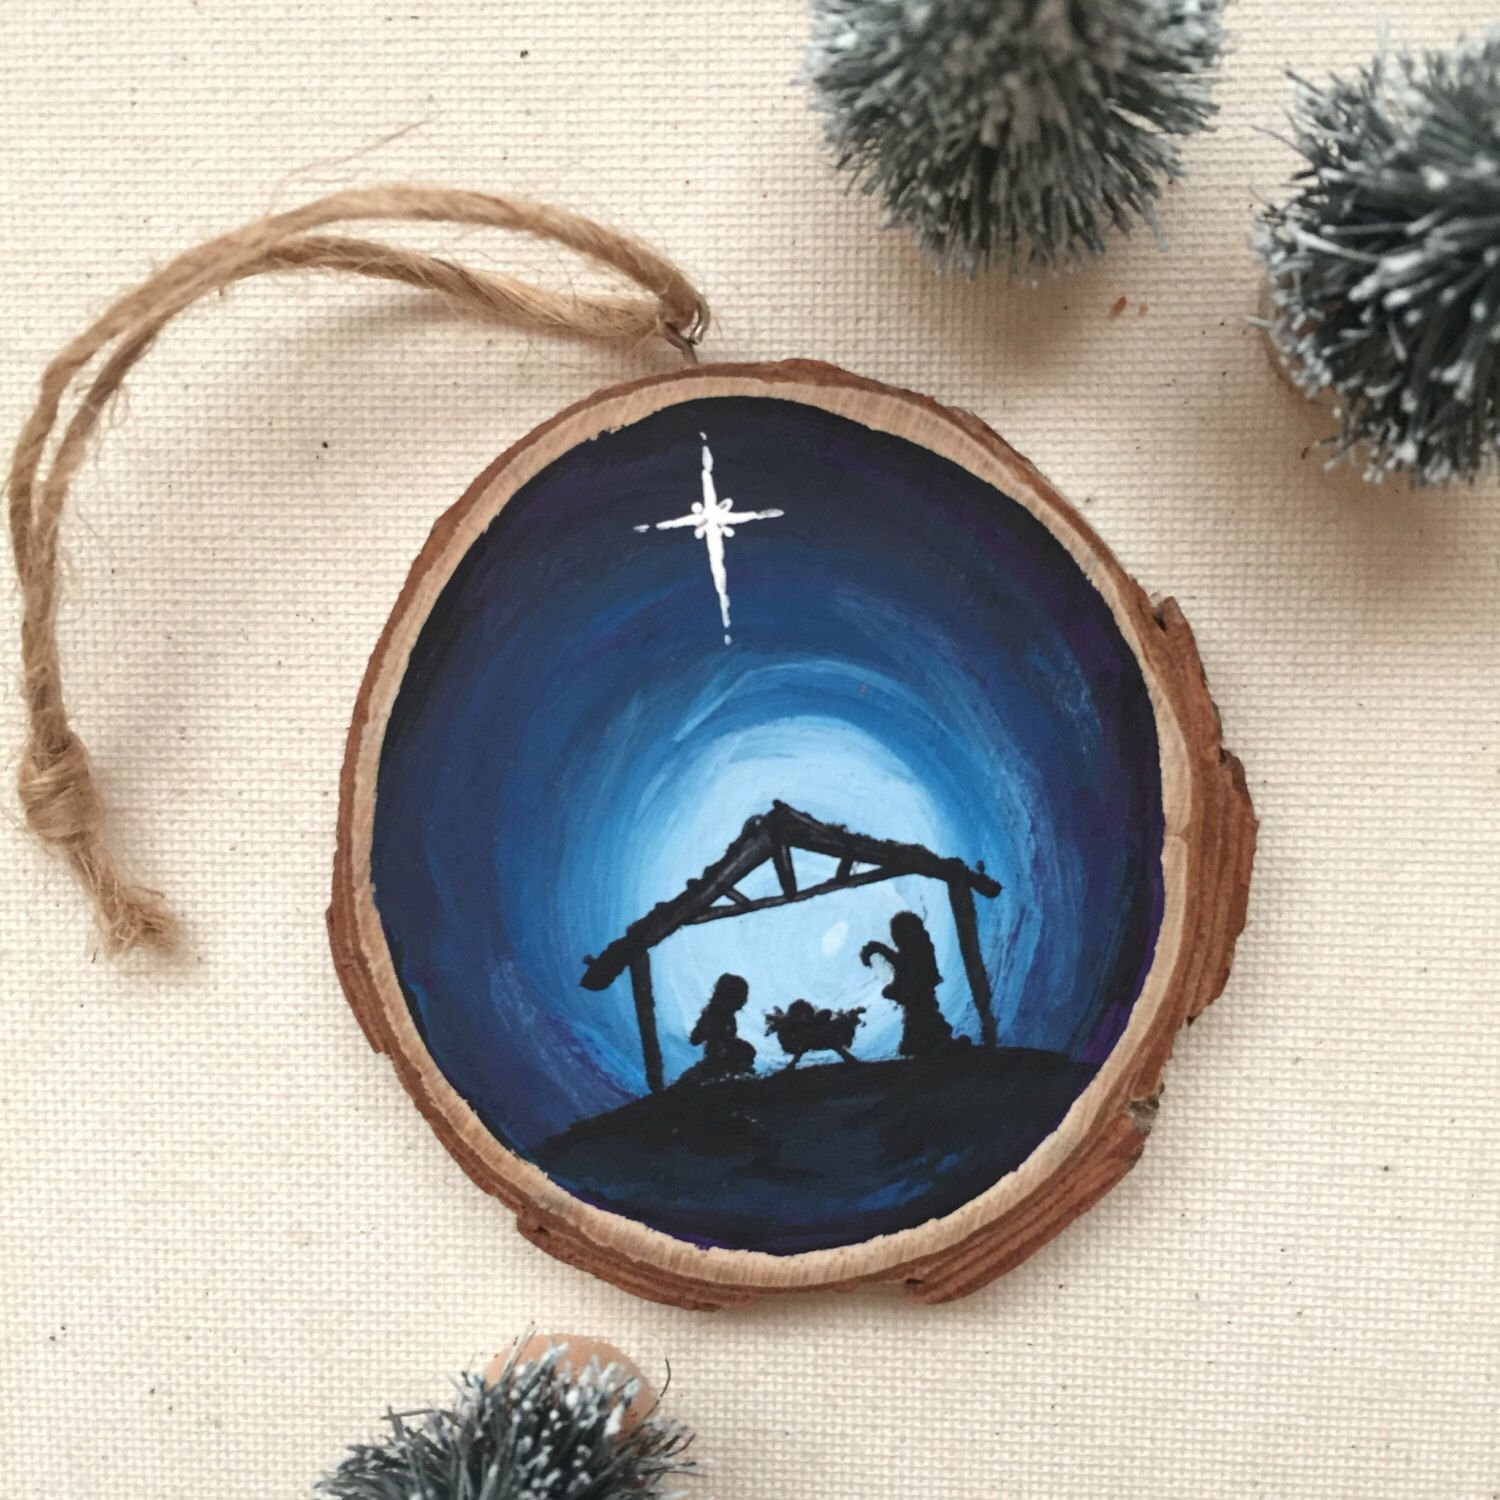 Hand Painted Jesus Ornament, Nativity Silhouette Wood ...